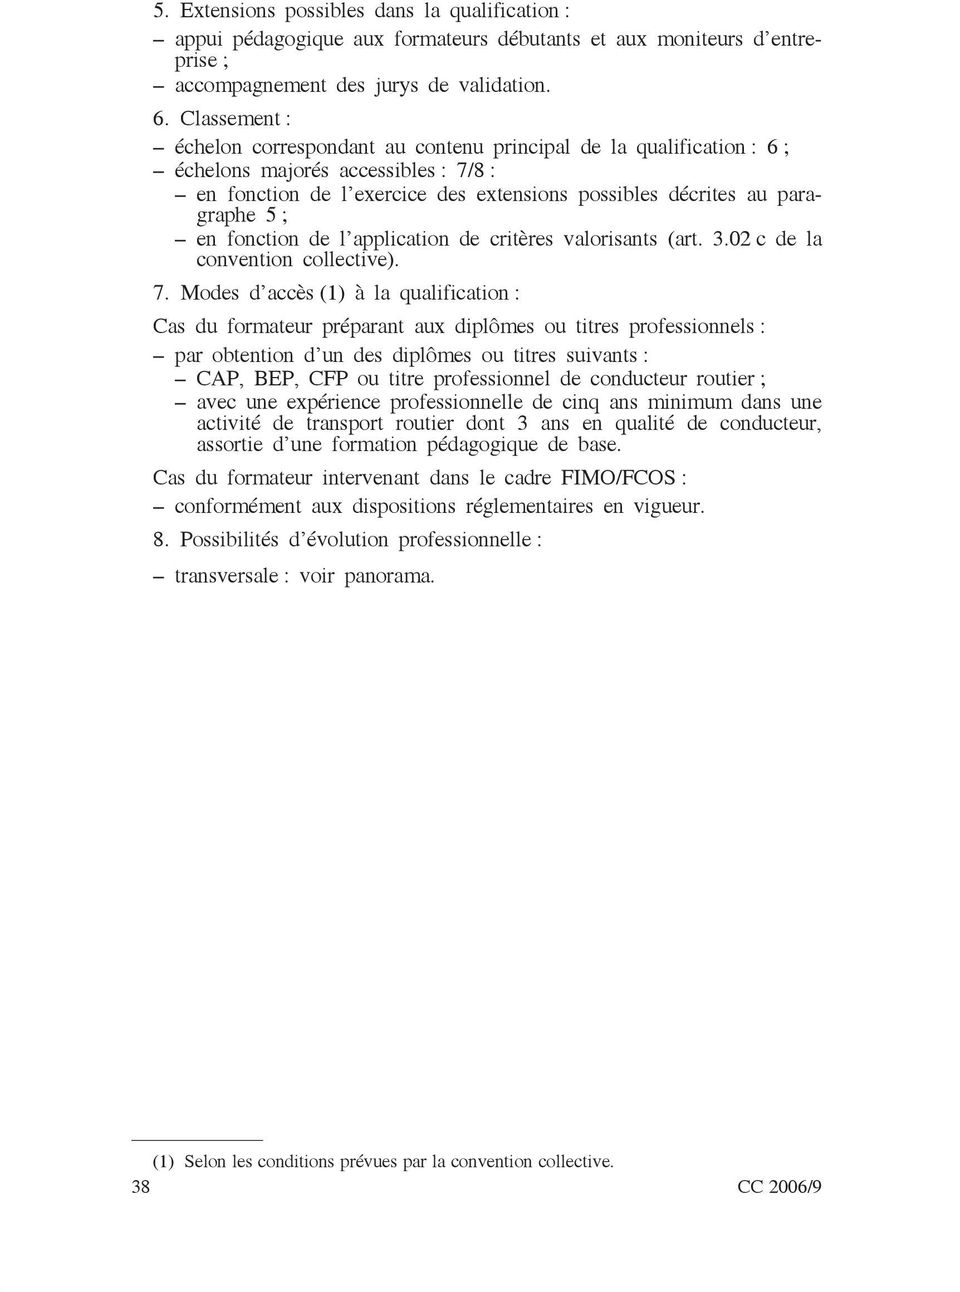 fonction de l application de critères valorisants (art. 3.02 c de la convention collective). 7.